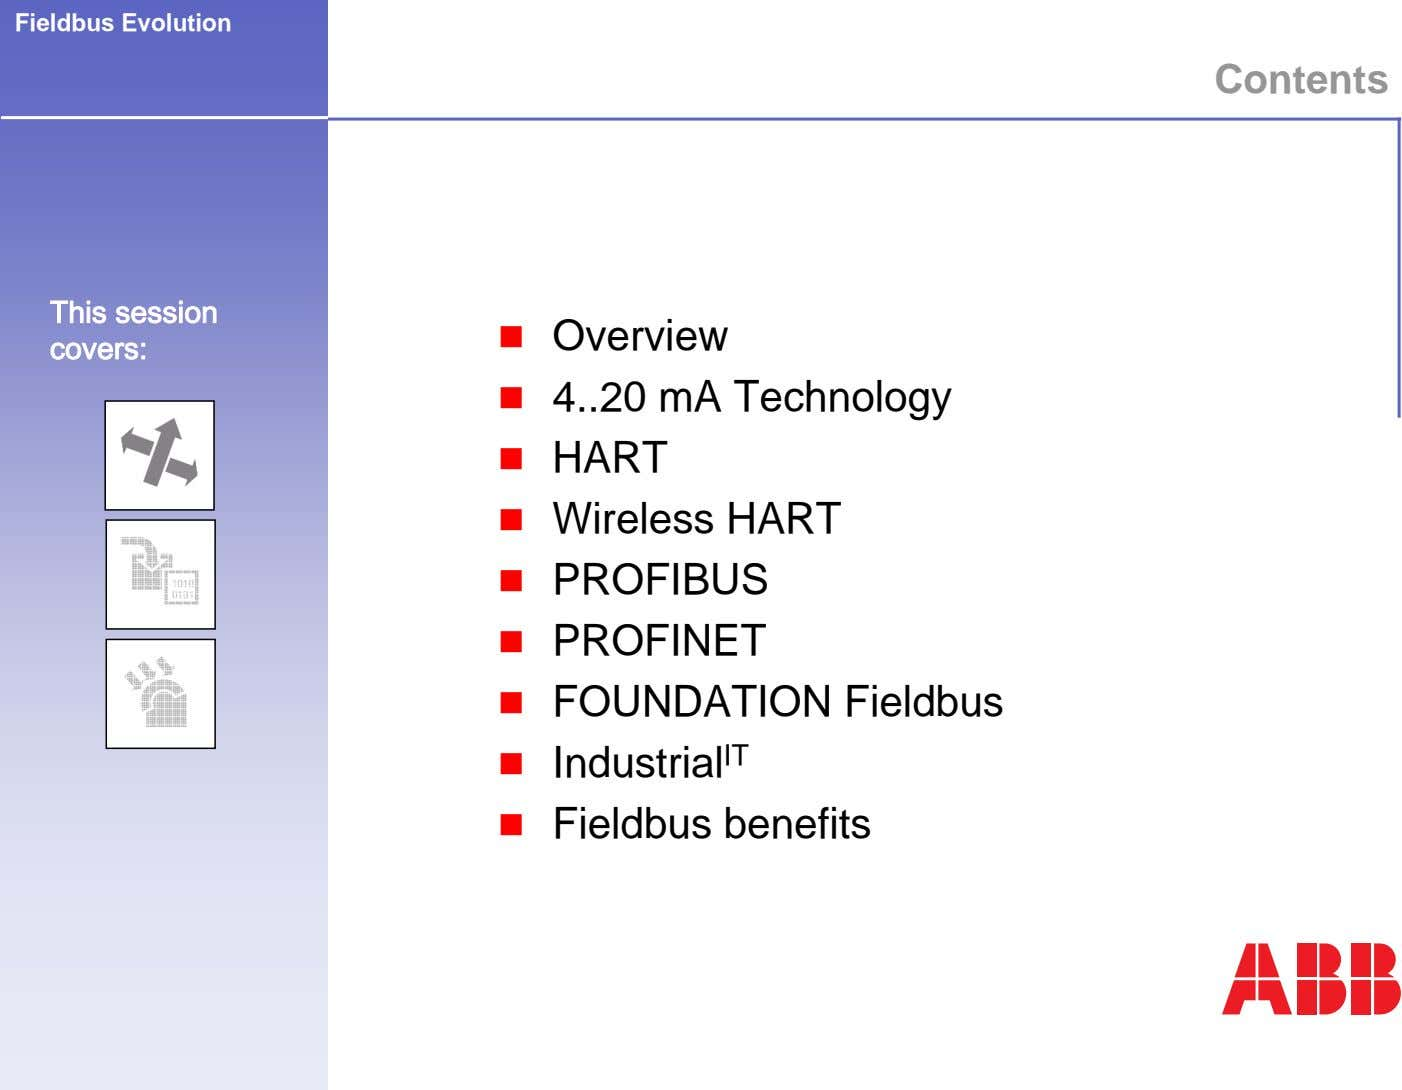 Fieldbus Evolution Contents This session covers: Overview 4 20 mA Technology HART Wireless HART PROFIBUS